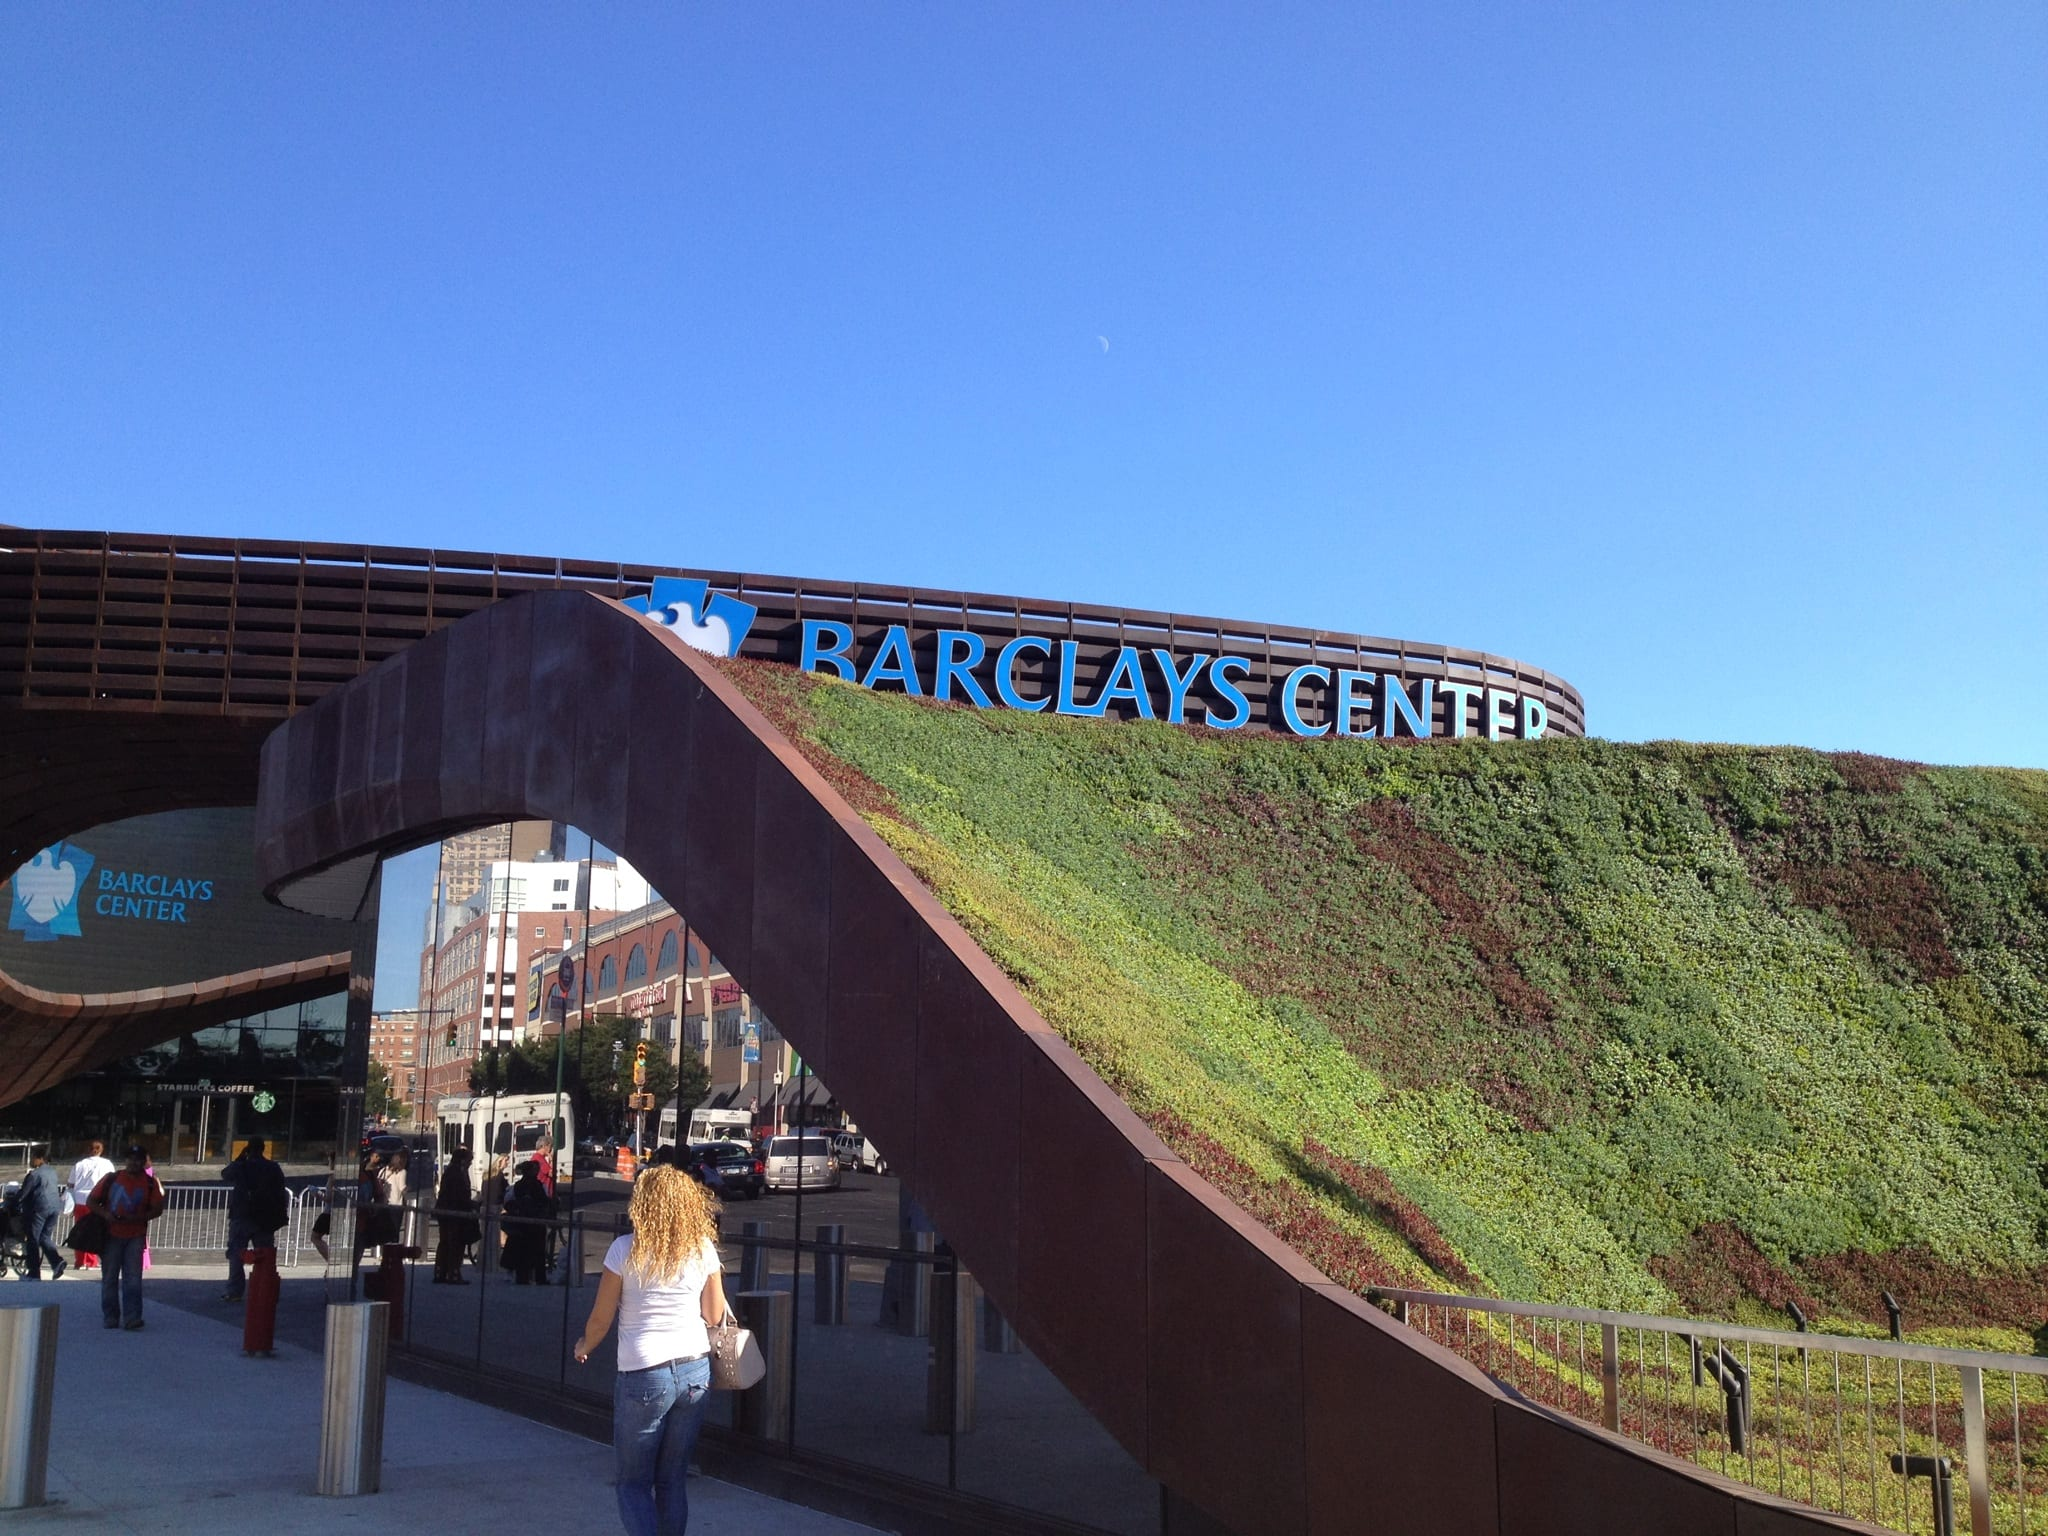 Green Roof over Subway Entrance at Barclays Center